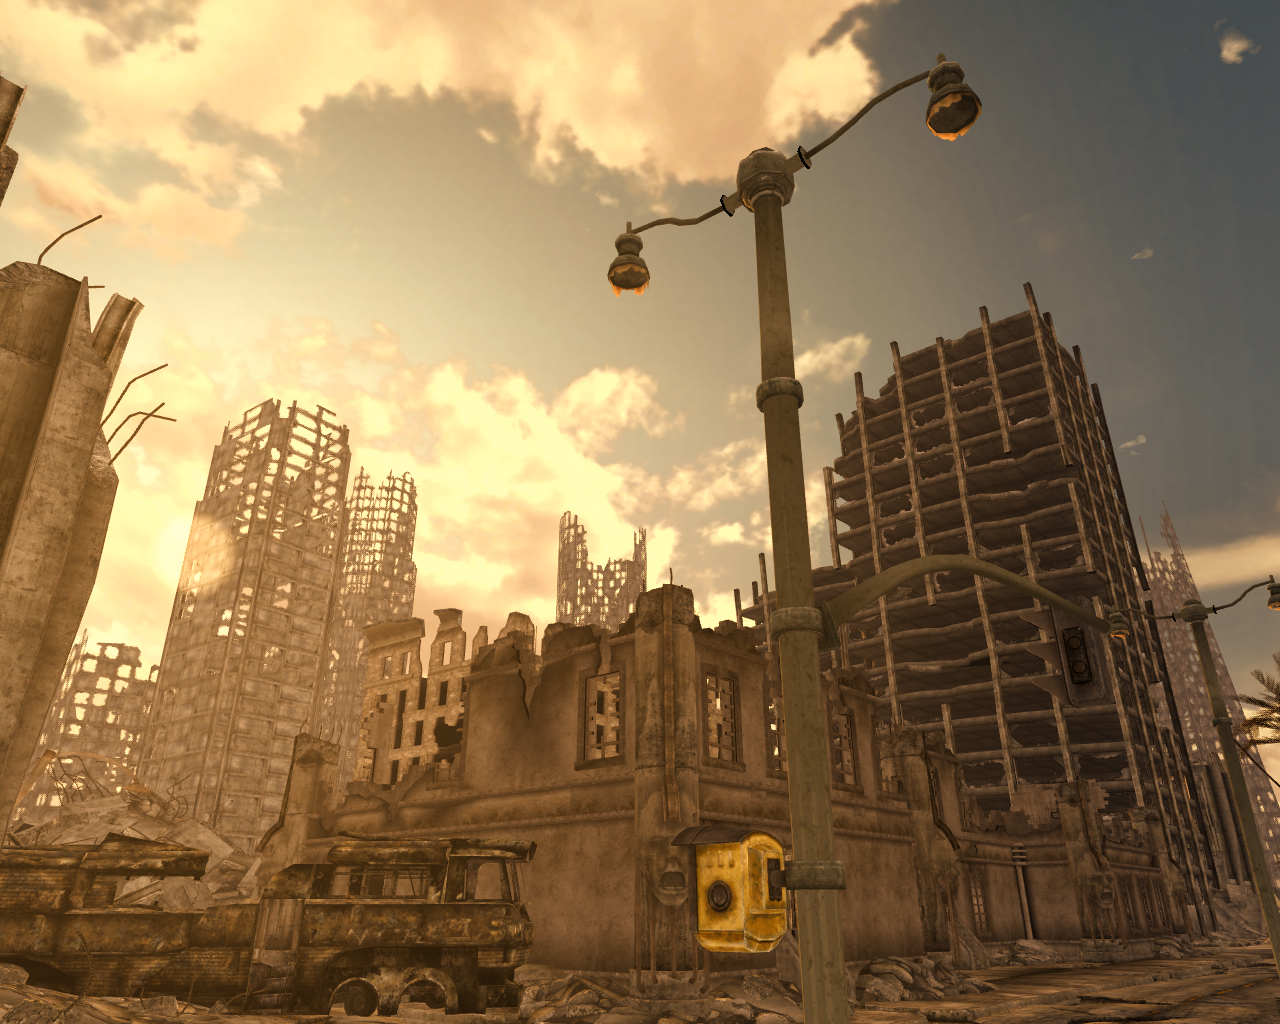 San francisco scrapers at fallout new vegas mods and community - Fallout new vegas skyline ...